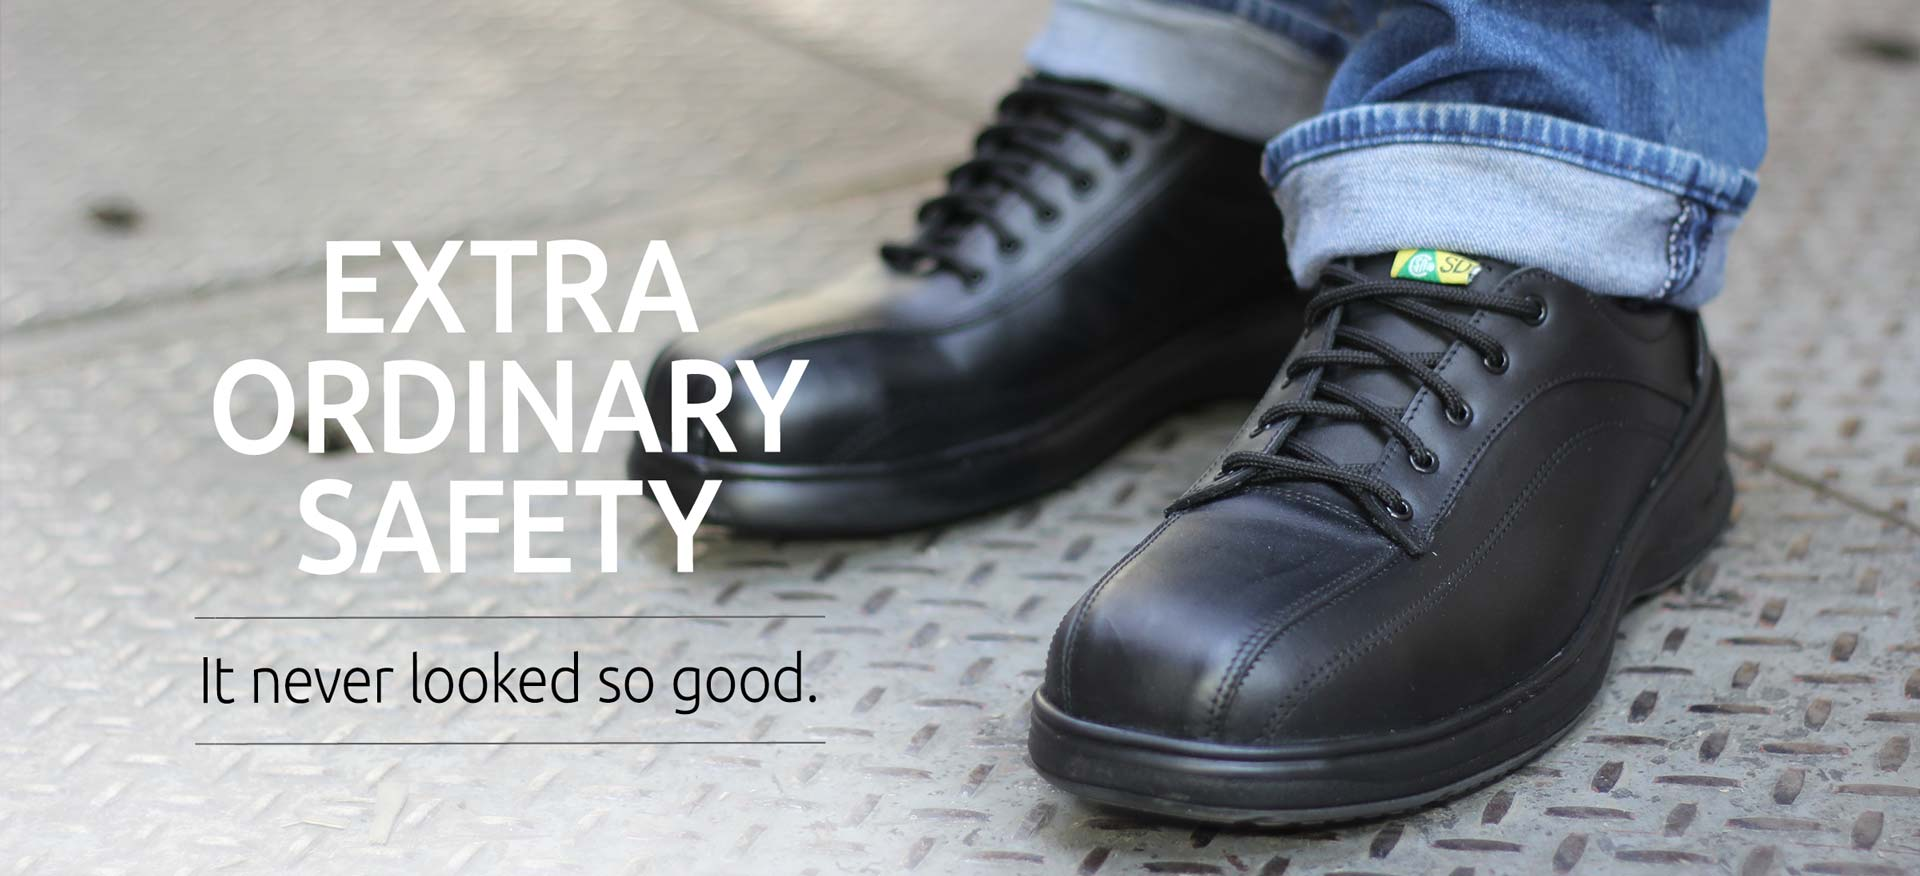 Extraordinary safety never looked so good